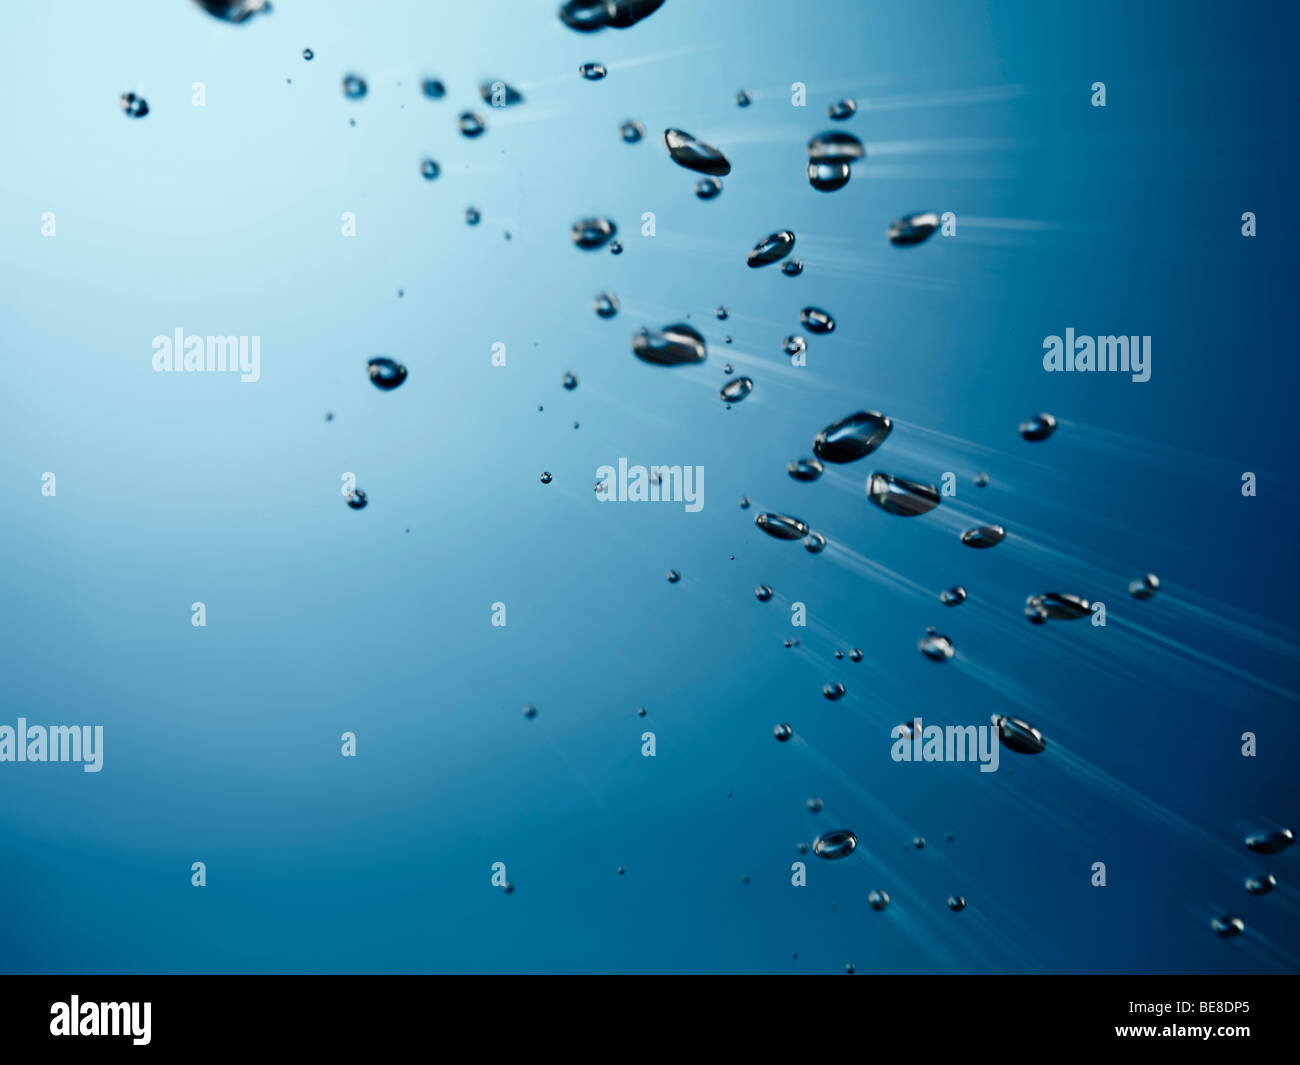 Oxygen bubbles rising to the surface of water - Stock Image